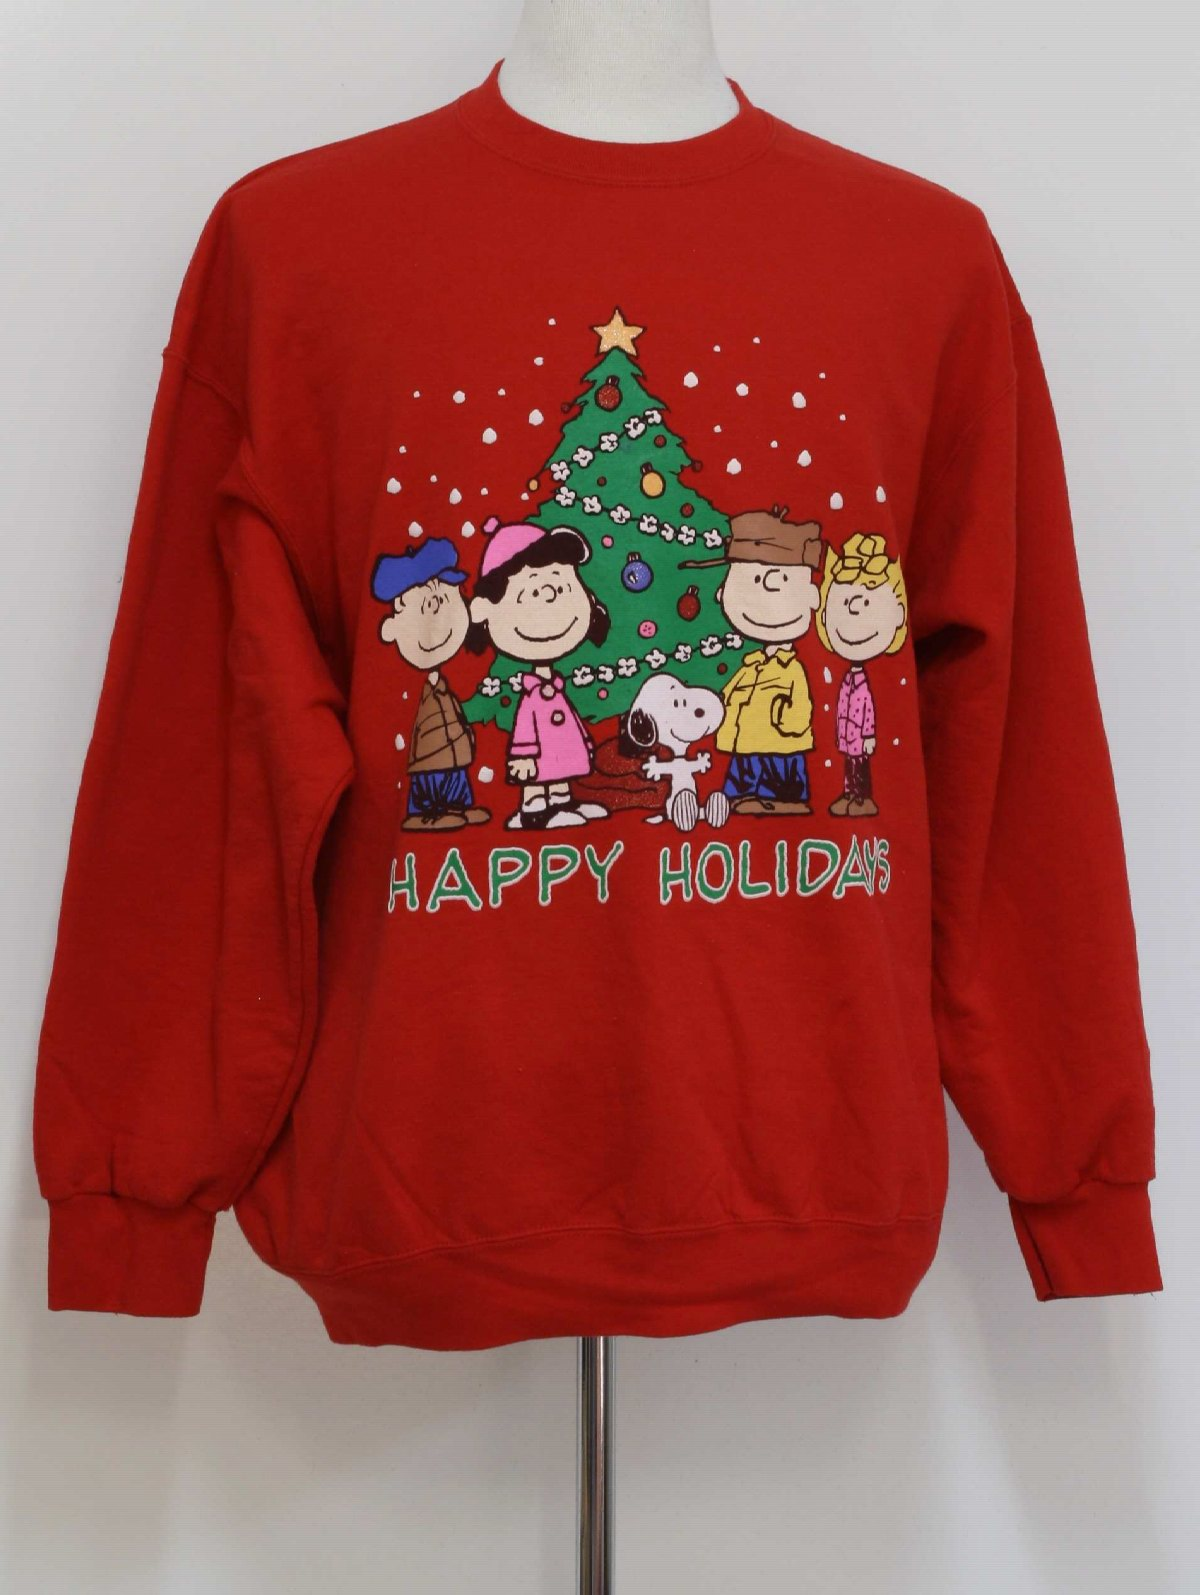 ugly christmas sweatshirt 80s style peanuts unisex red background cotton polyester blend longsleeve pullover ugly christmas sweatshirt with charlie brown